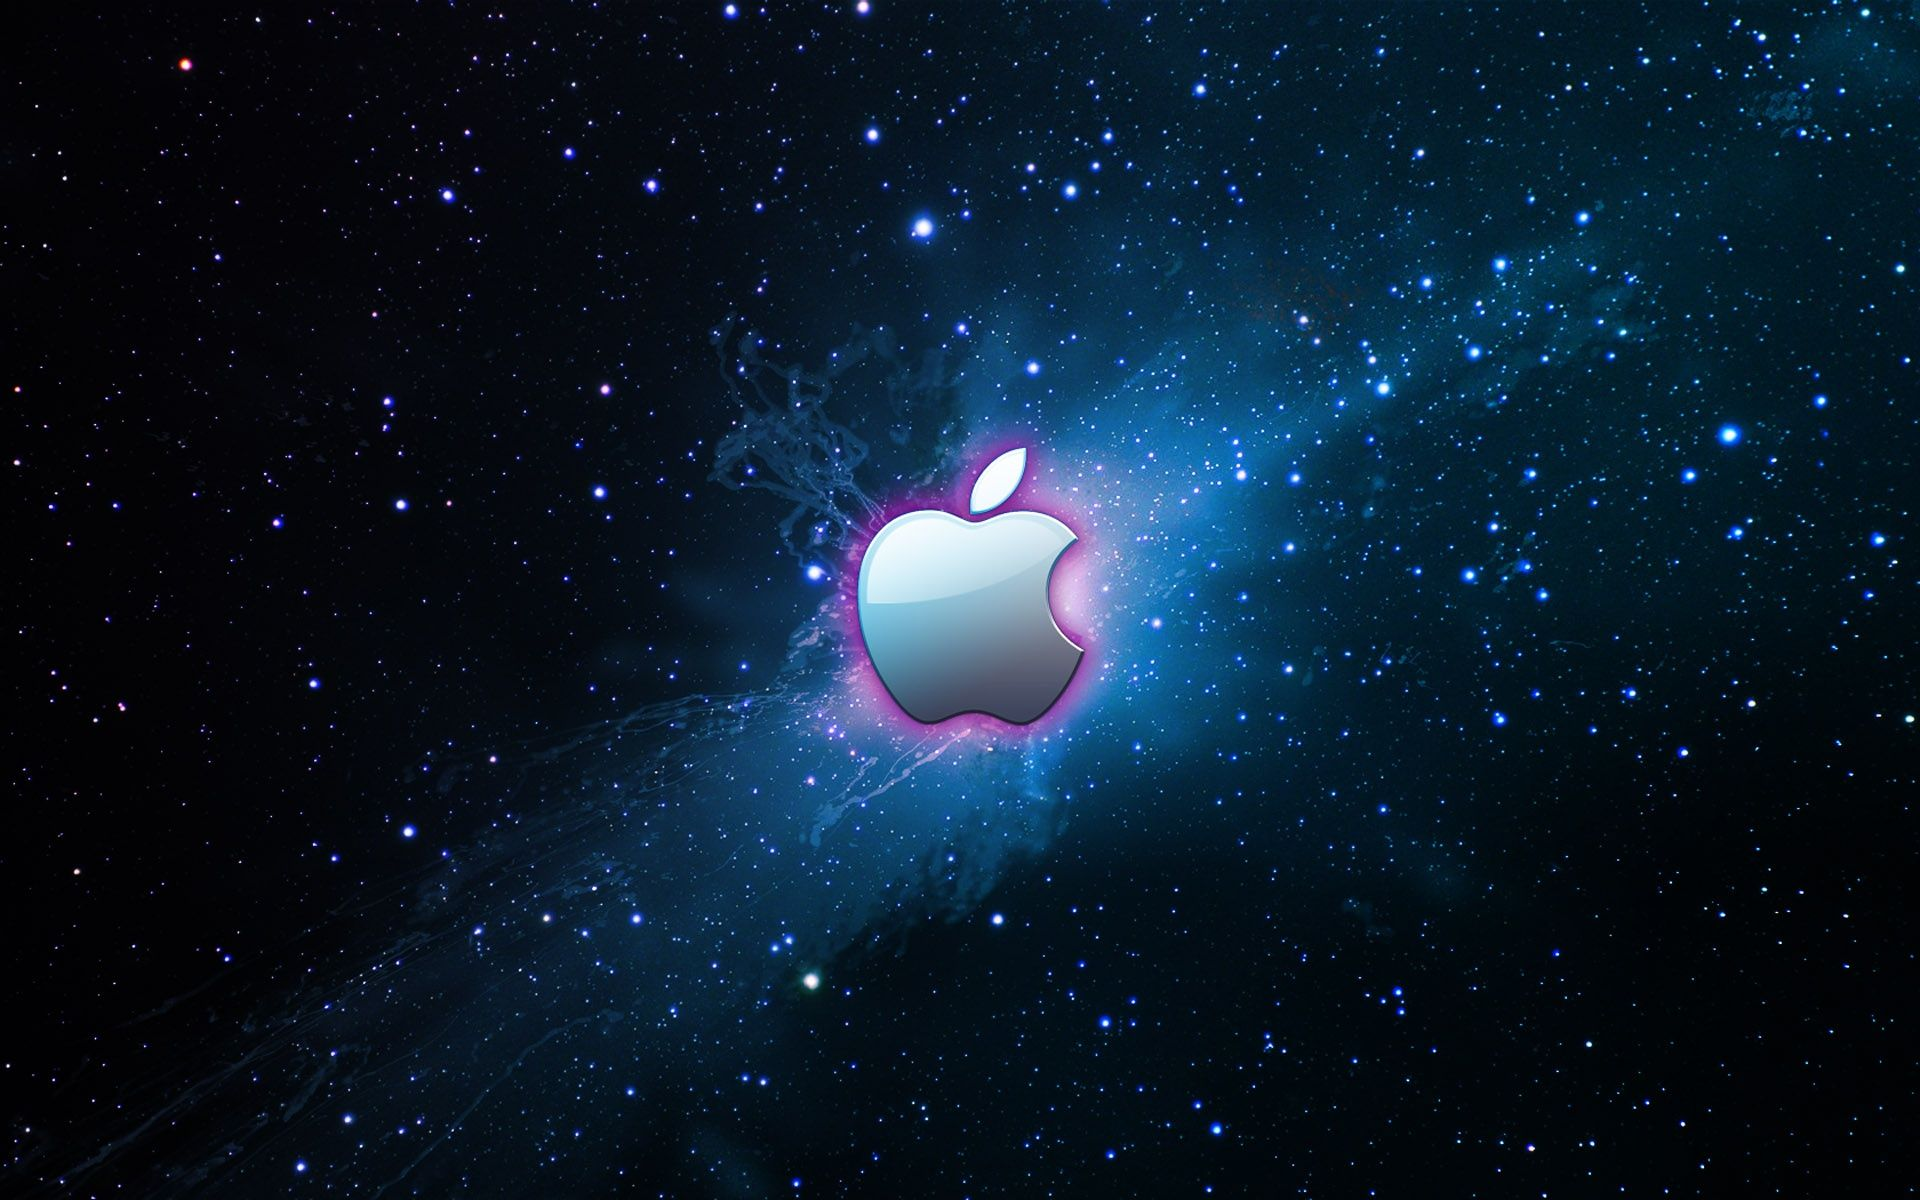 Apple Logo Hd Wallpapers For Iphone 1920 1080 Apple Logo: Apple Logo Wallpaper Hd Wallpaper